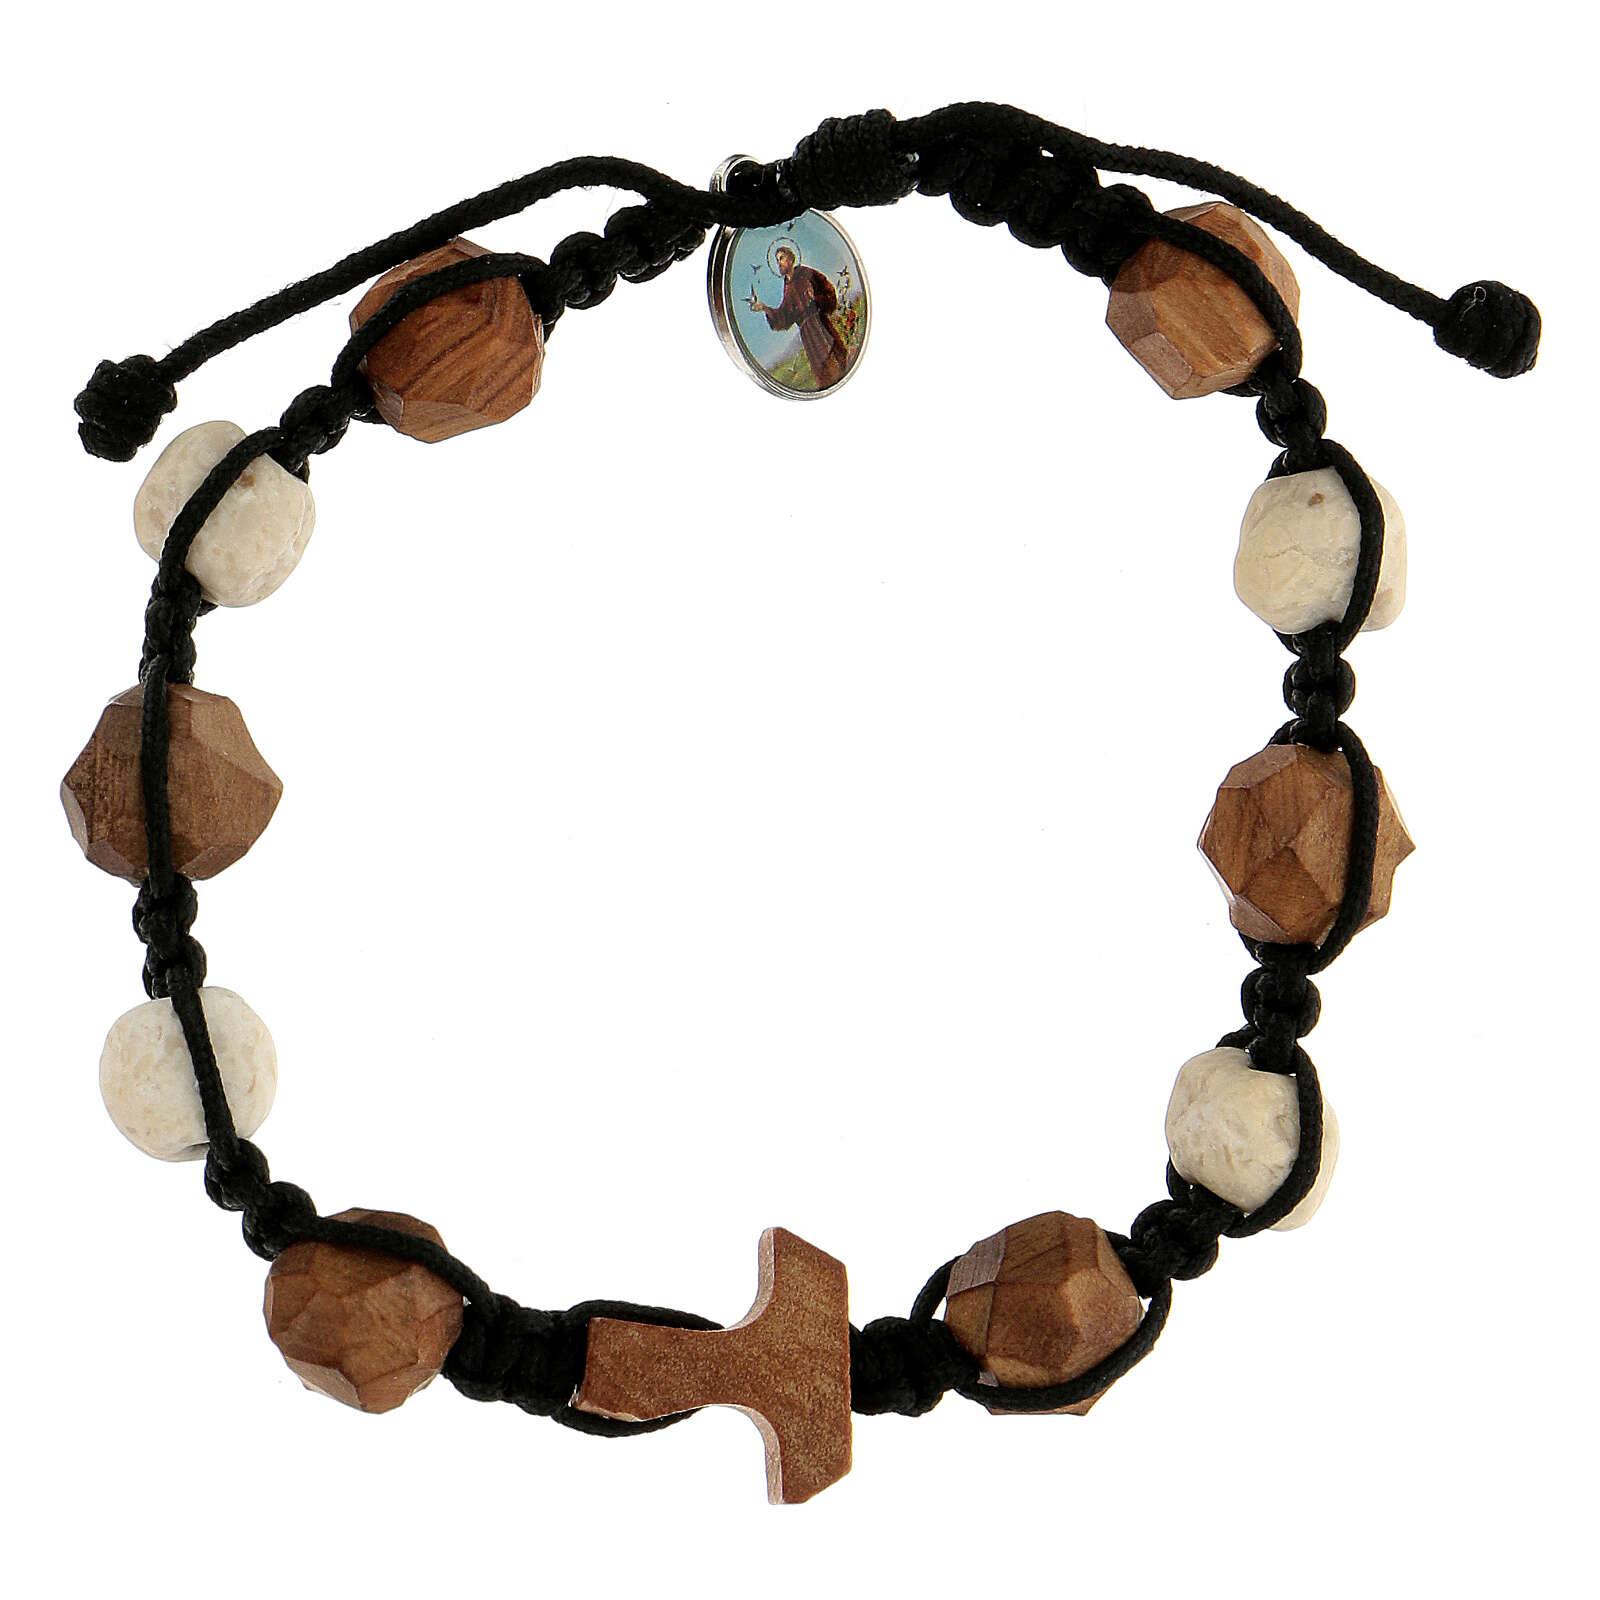 Bracelet with olive wood components, characterised by rounded beads and tau cross 4